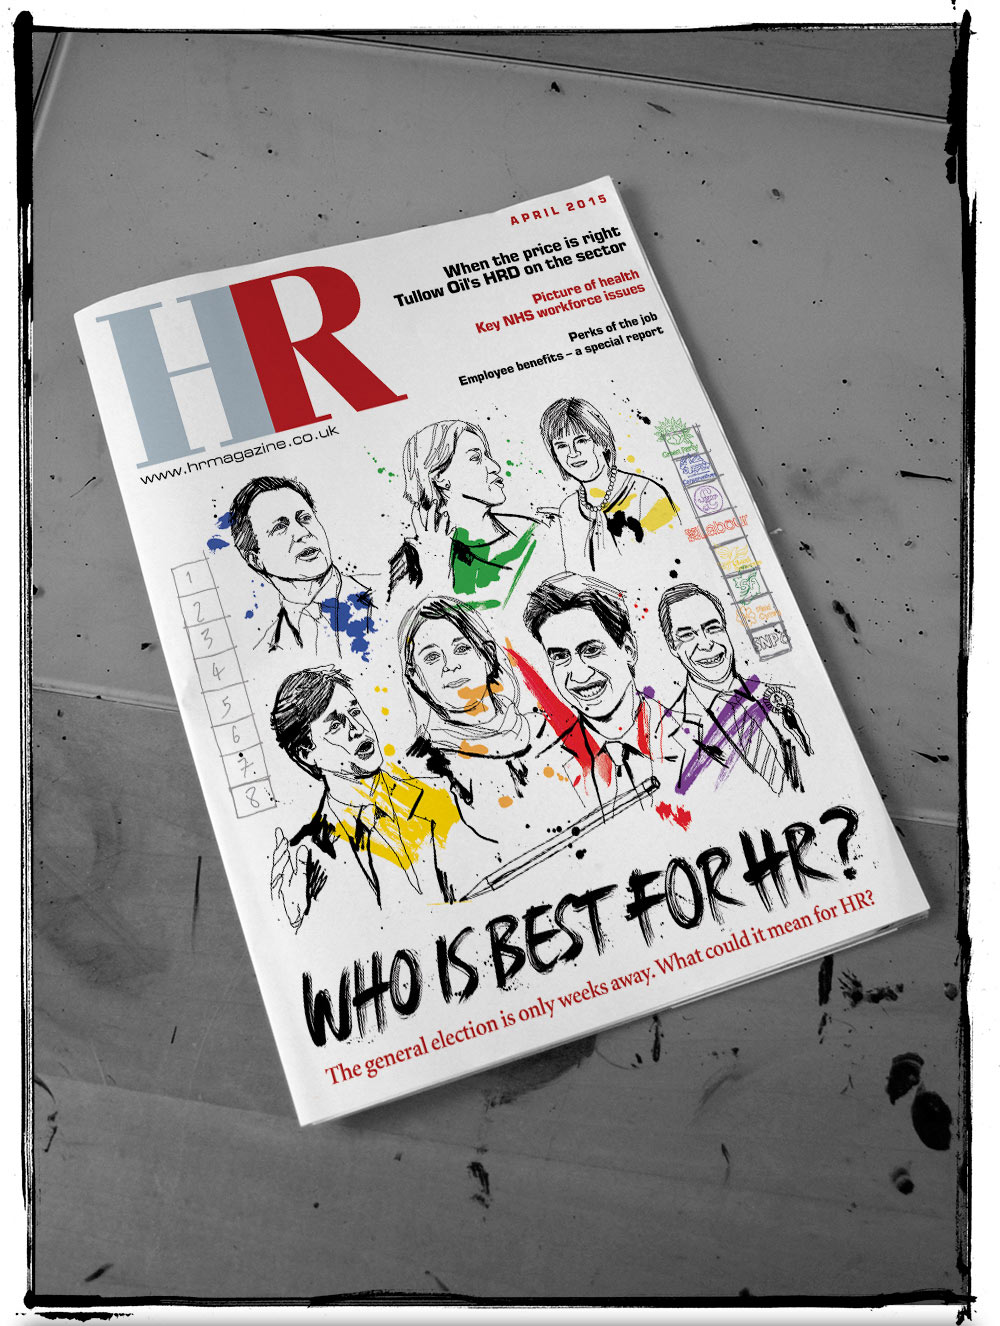 HR Magazine, general election, portrait illustration, conservatives, labour, green part, liberal democrats, SNP, artwork, line drawing illustrated, pen andink, brush type, painted lettering, Ben Tallon